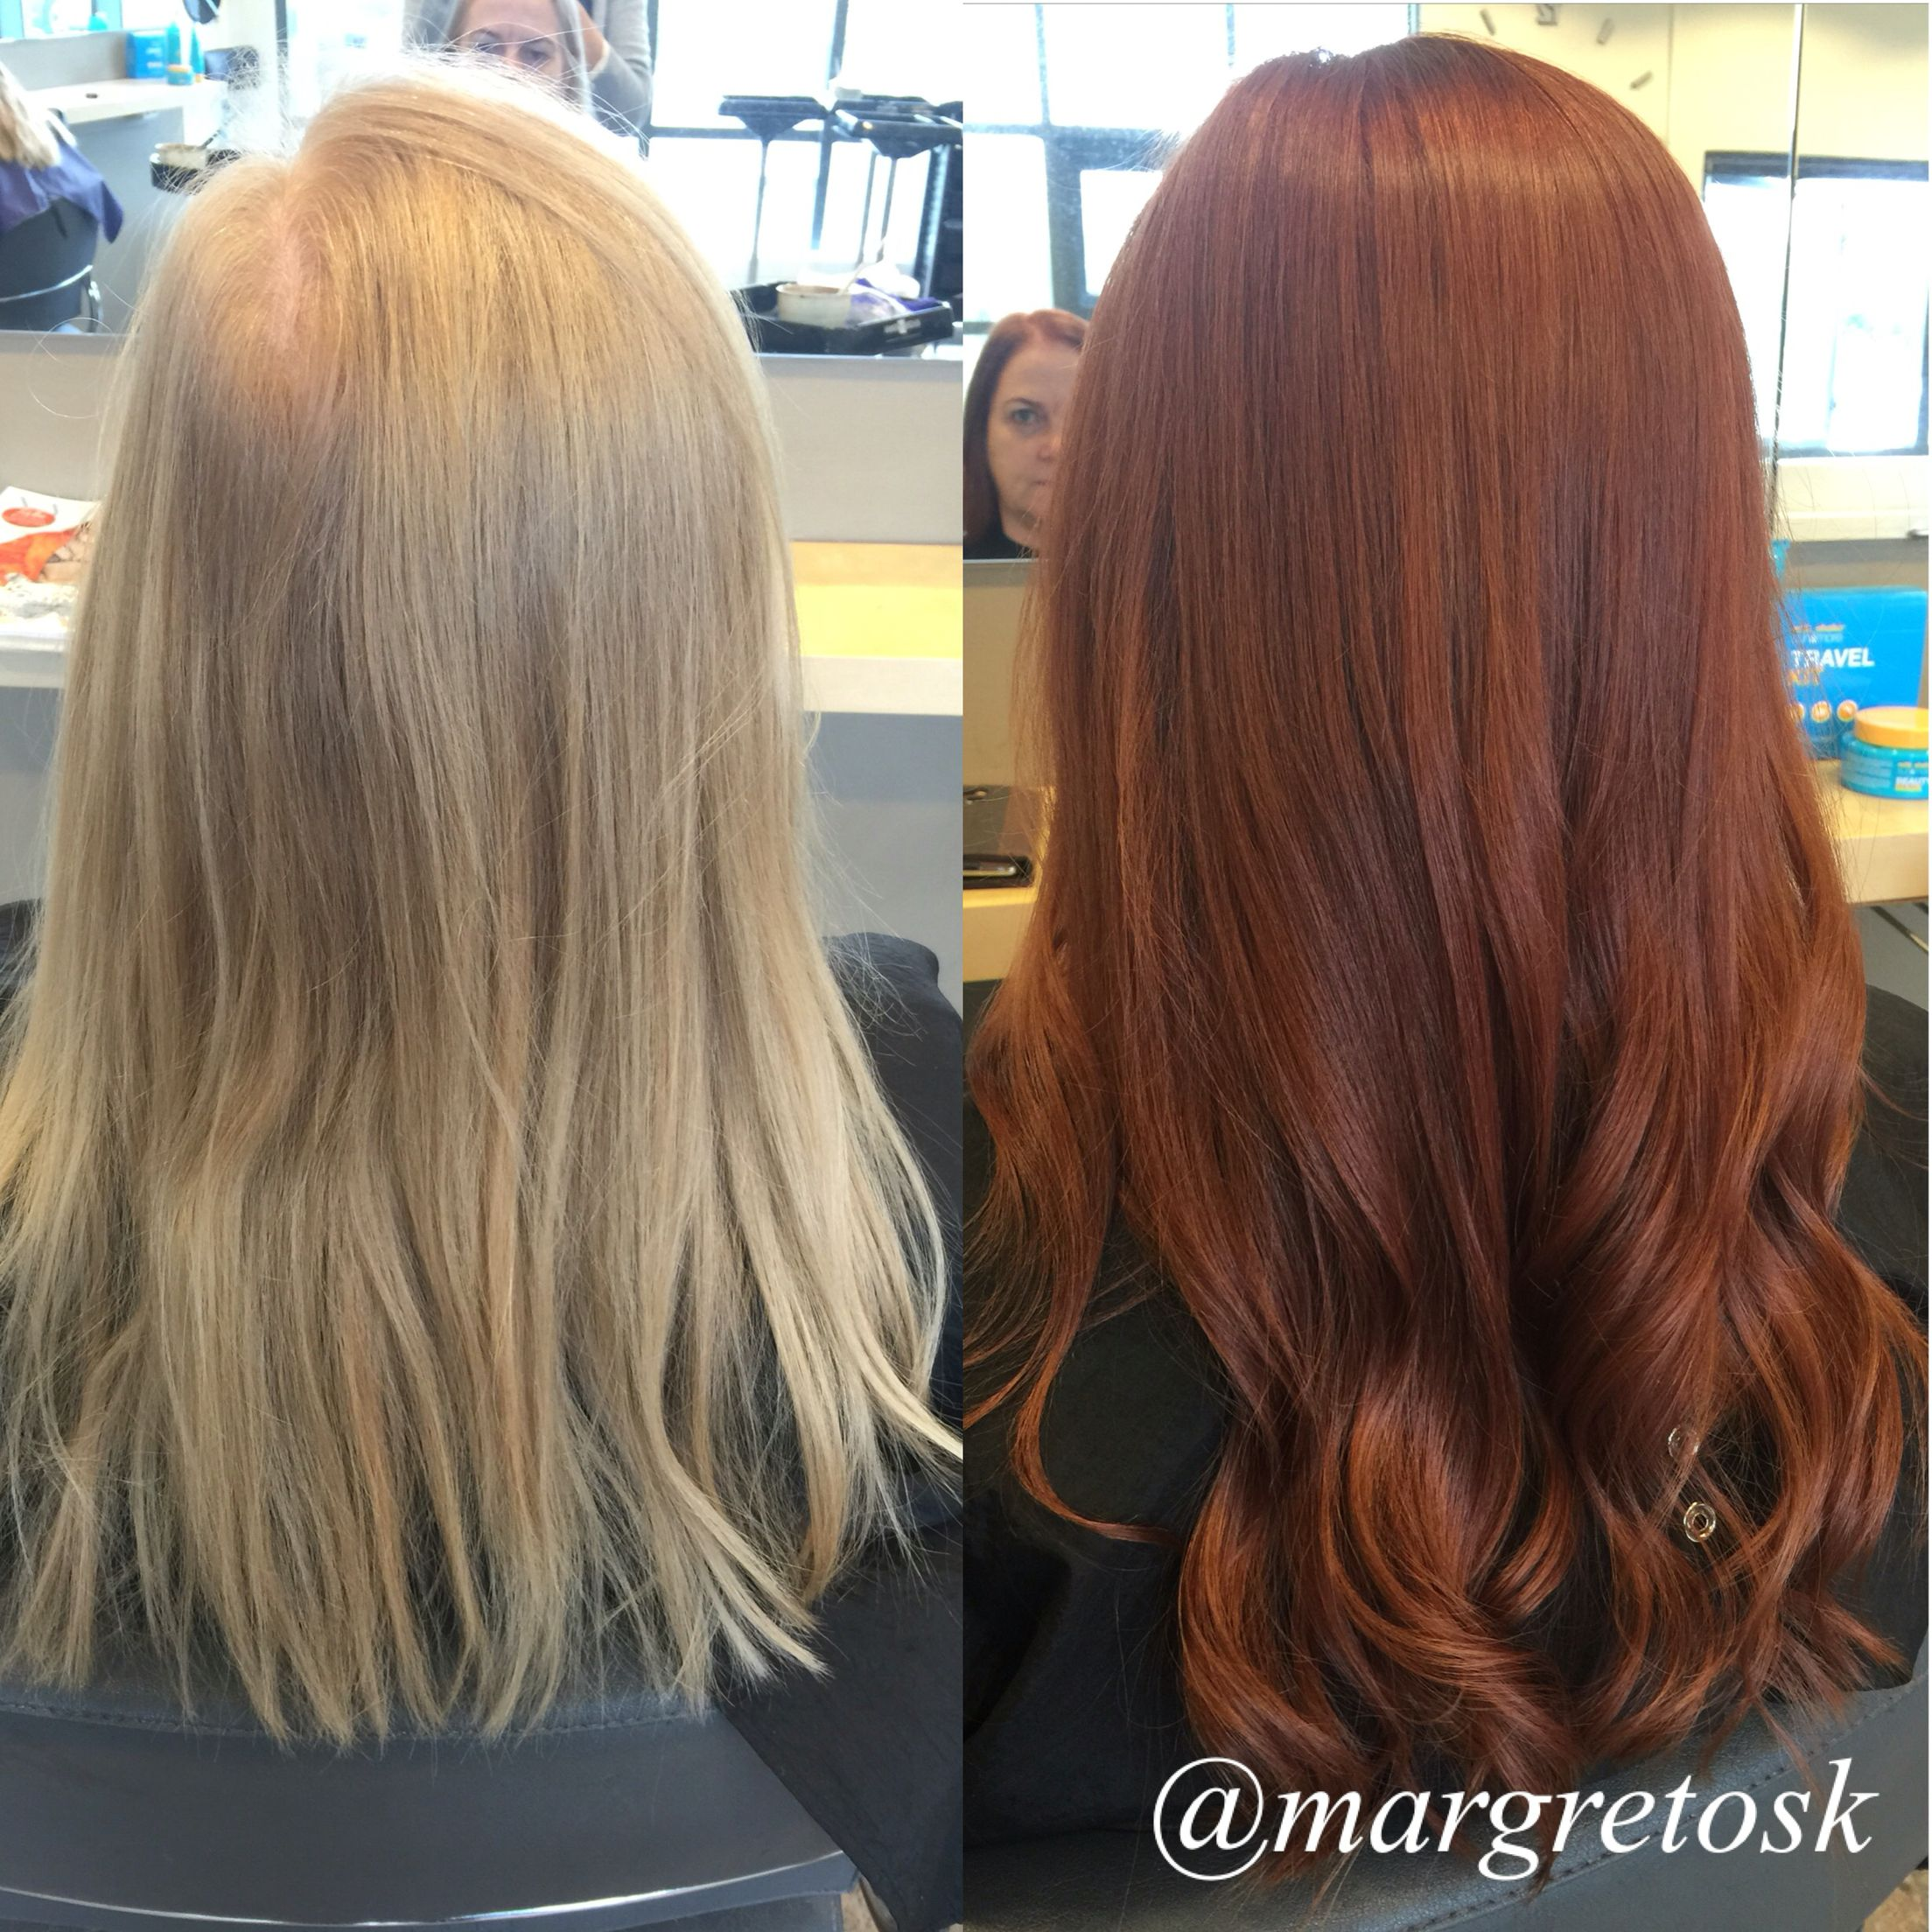 Dramatic Transformation From Blonde To A Rich Red Auburn Color